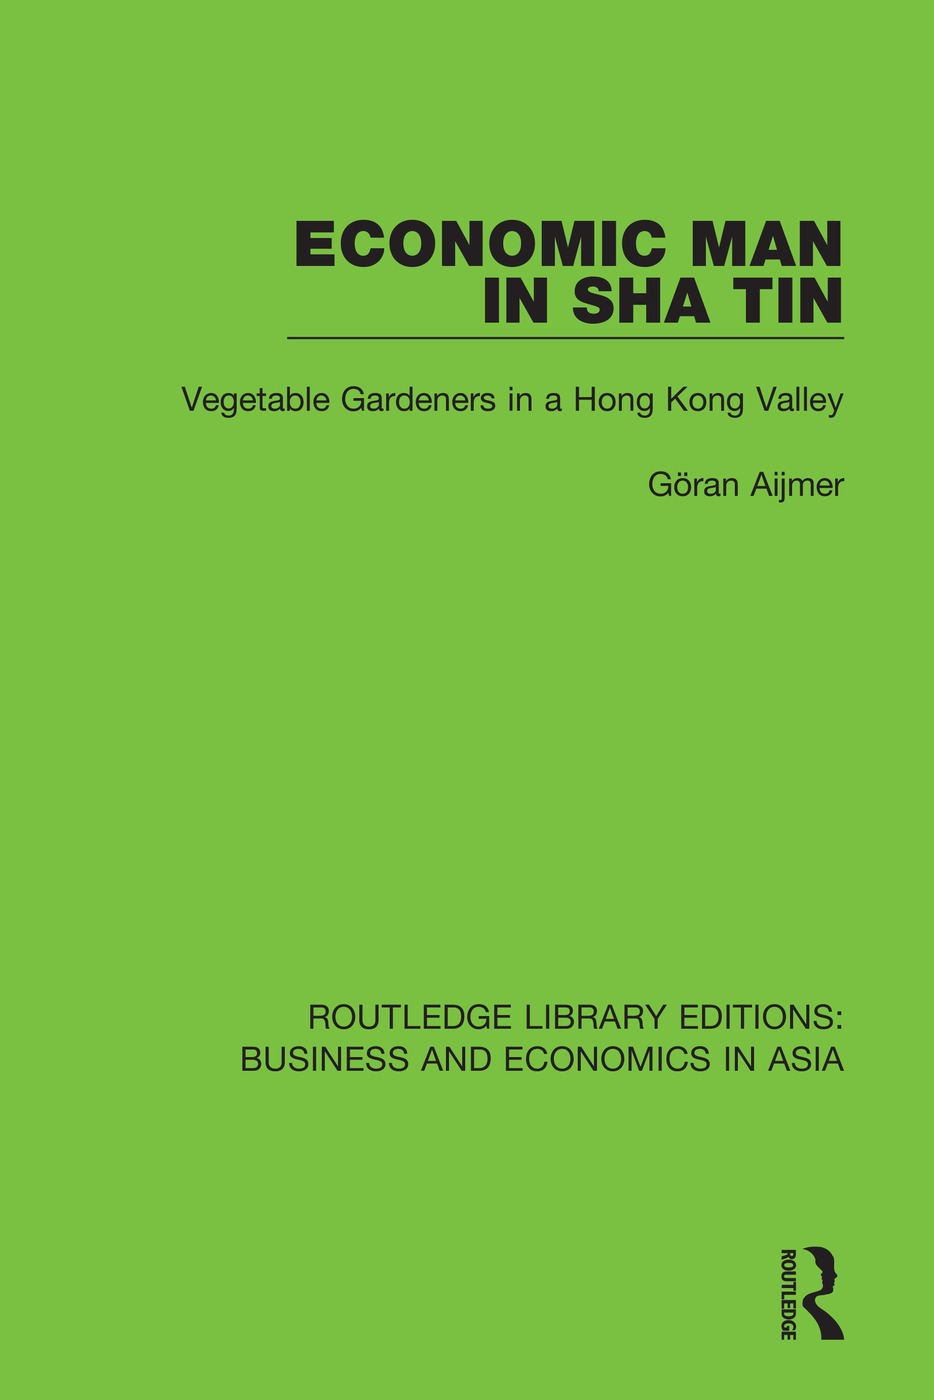 Economic Man in Sha Tin: Vegetable Gardeners in a Hong Kong Valley, 1st Edition (Paperback) book cover